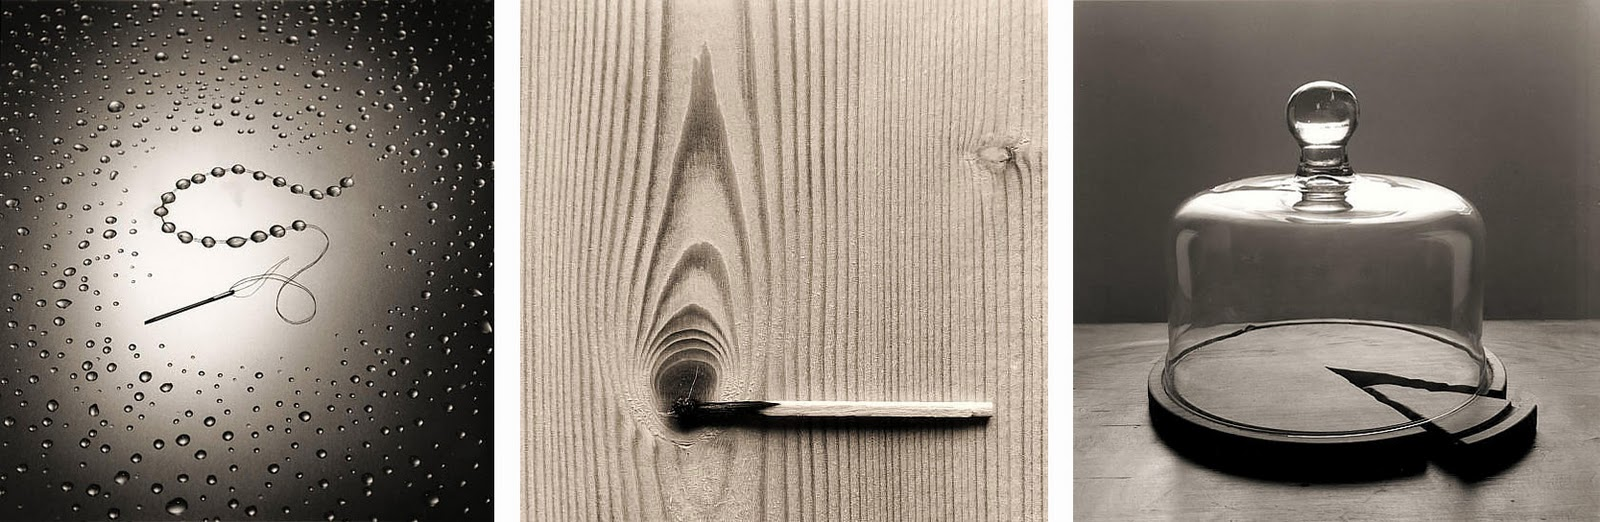 Photographer - Chema Madoz